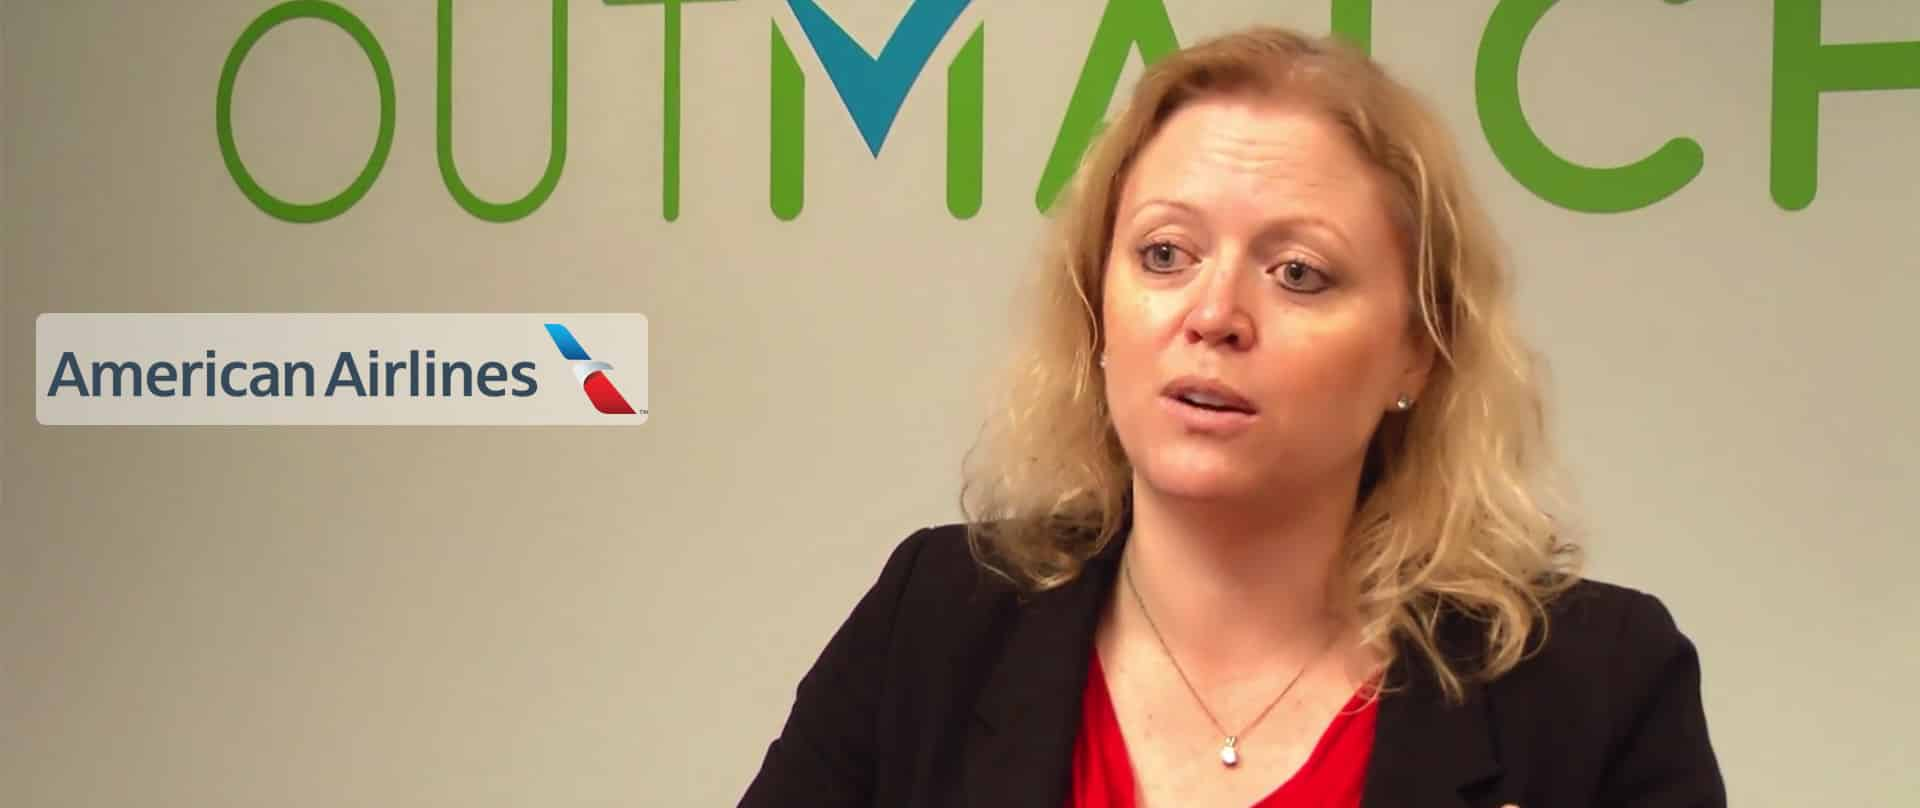 Client Success: Creating A Hospitality Culture At American Airlines